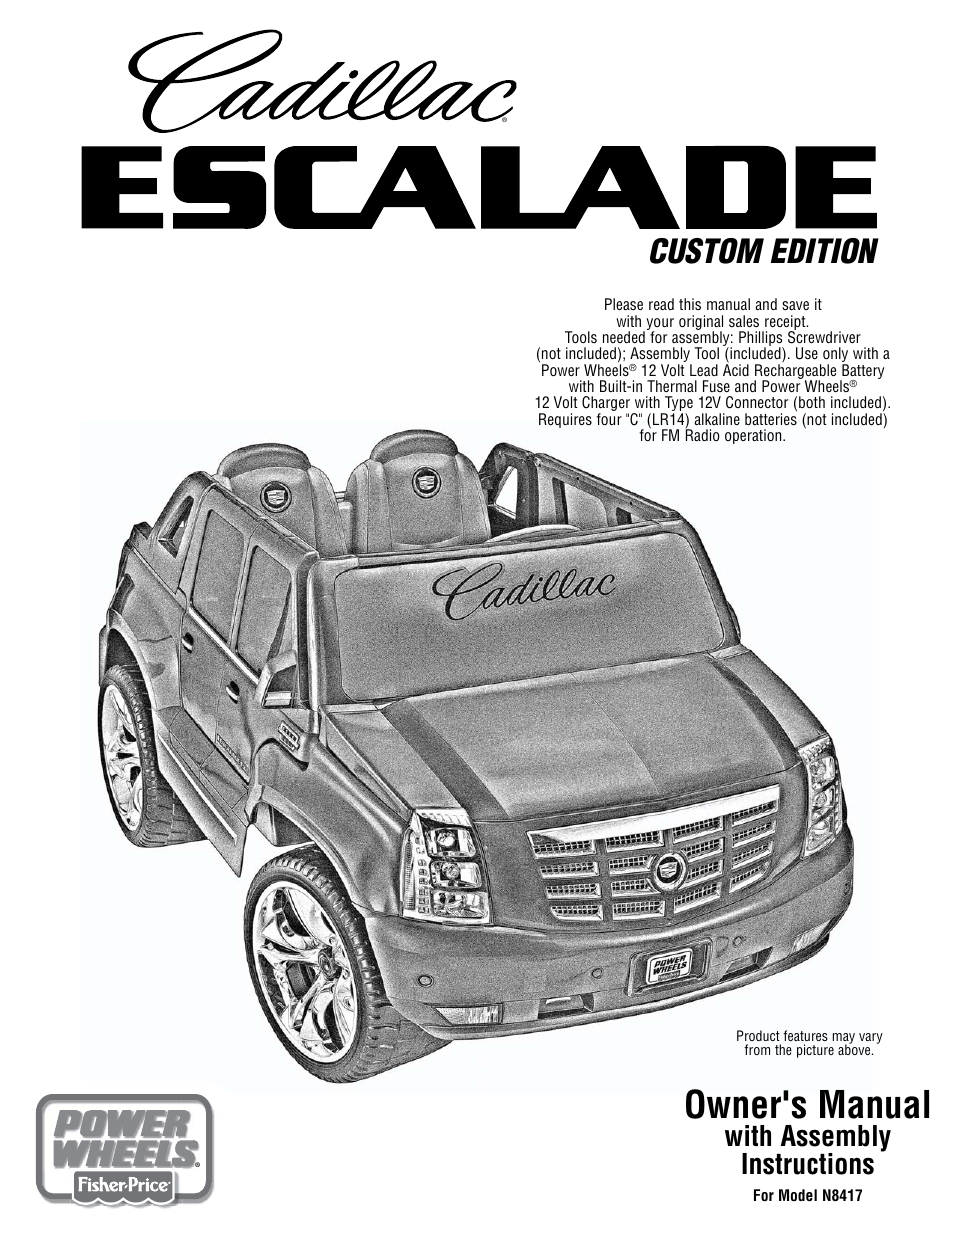 Fisher-Price CADILLAC ESCALADE CUSTOM EDITION POWER WHEELS N8417 User Manual  | 32 pages